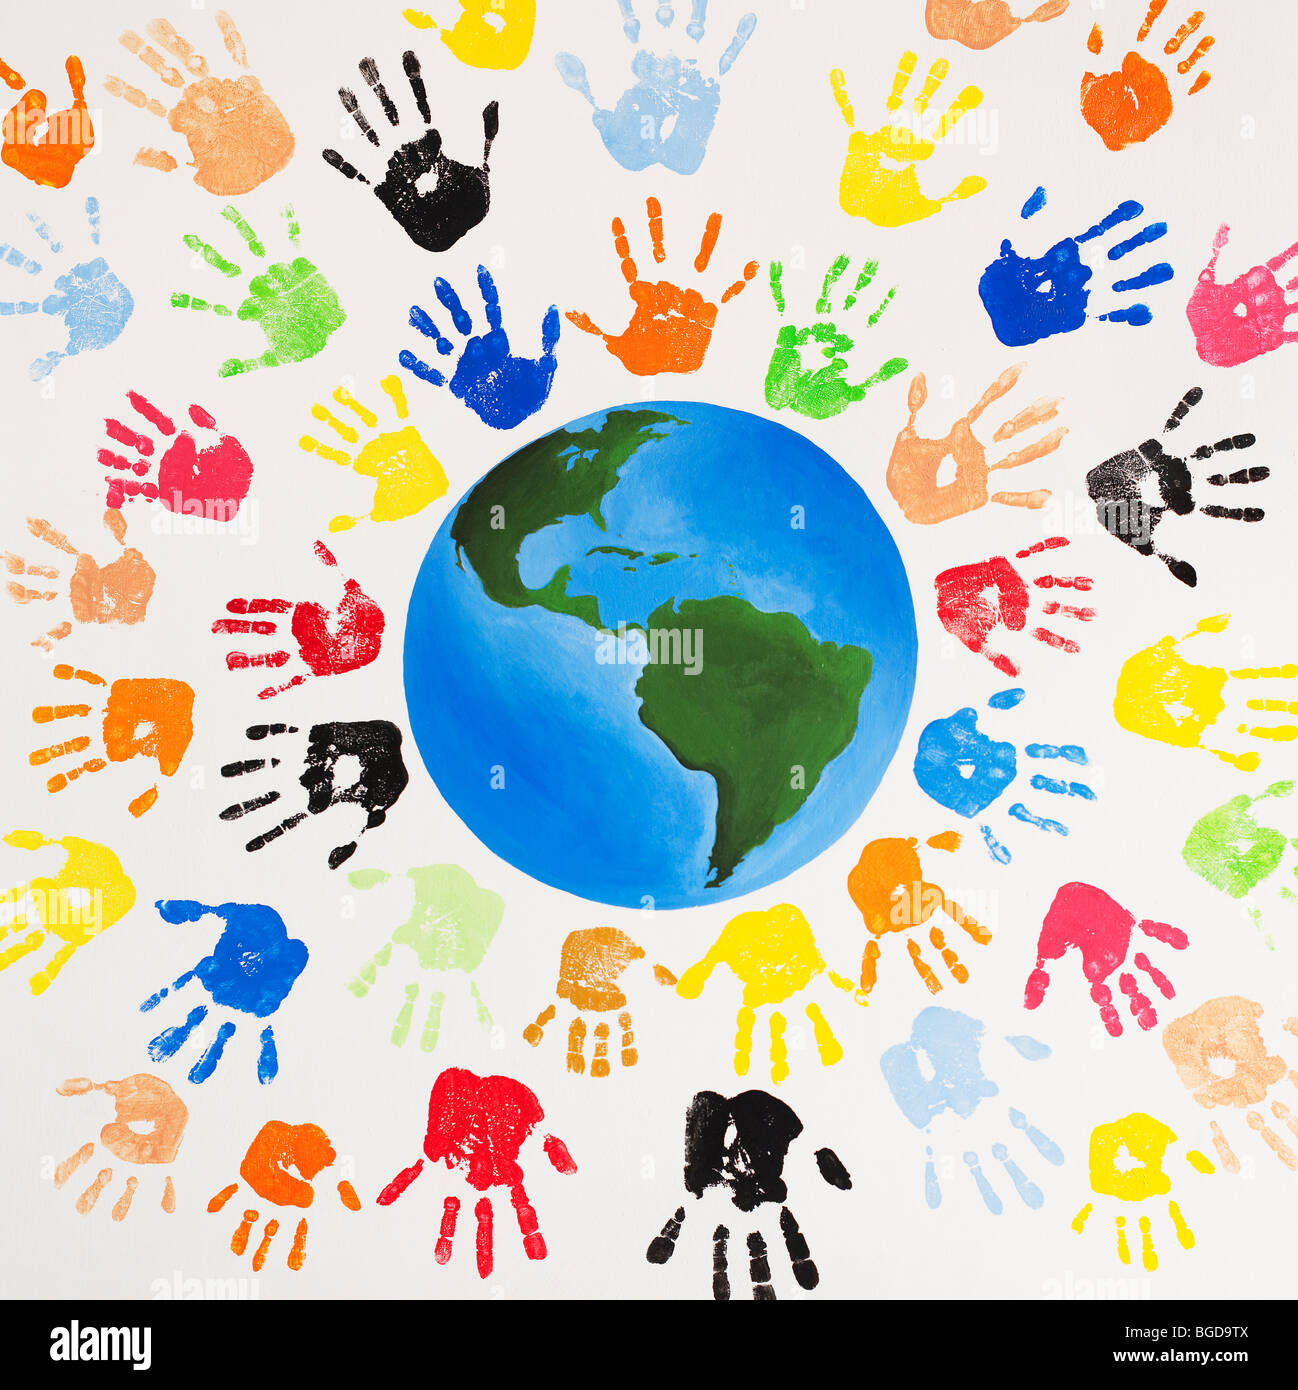 Helping Hands Of America >> Multicoloured painted children's hand prints around the world Stock Photo, Royalty Free Image ...